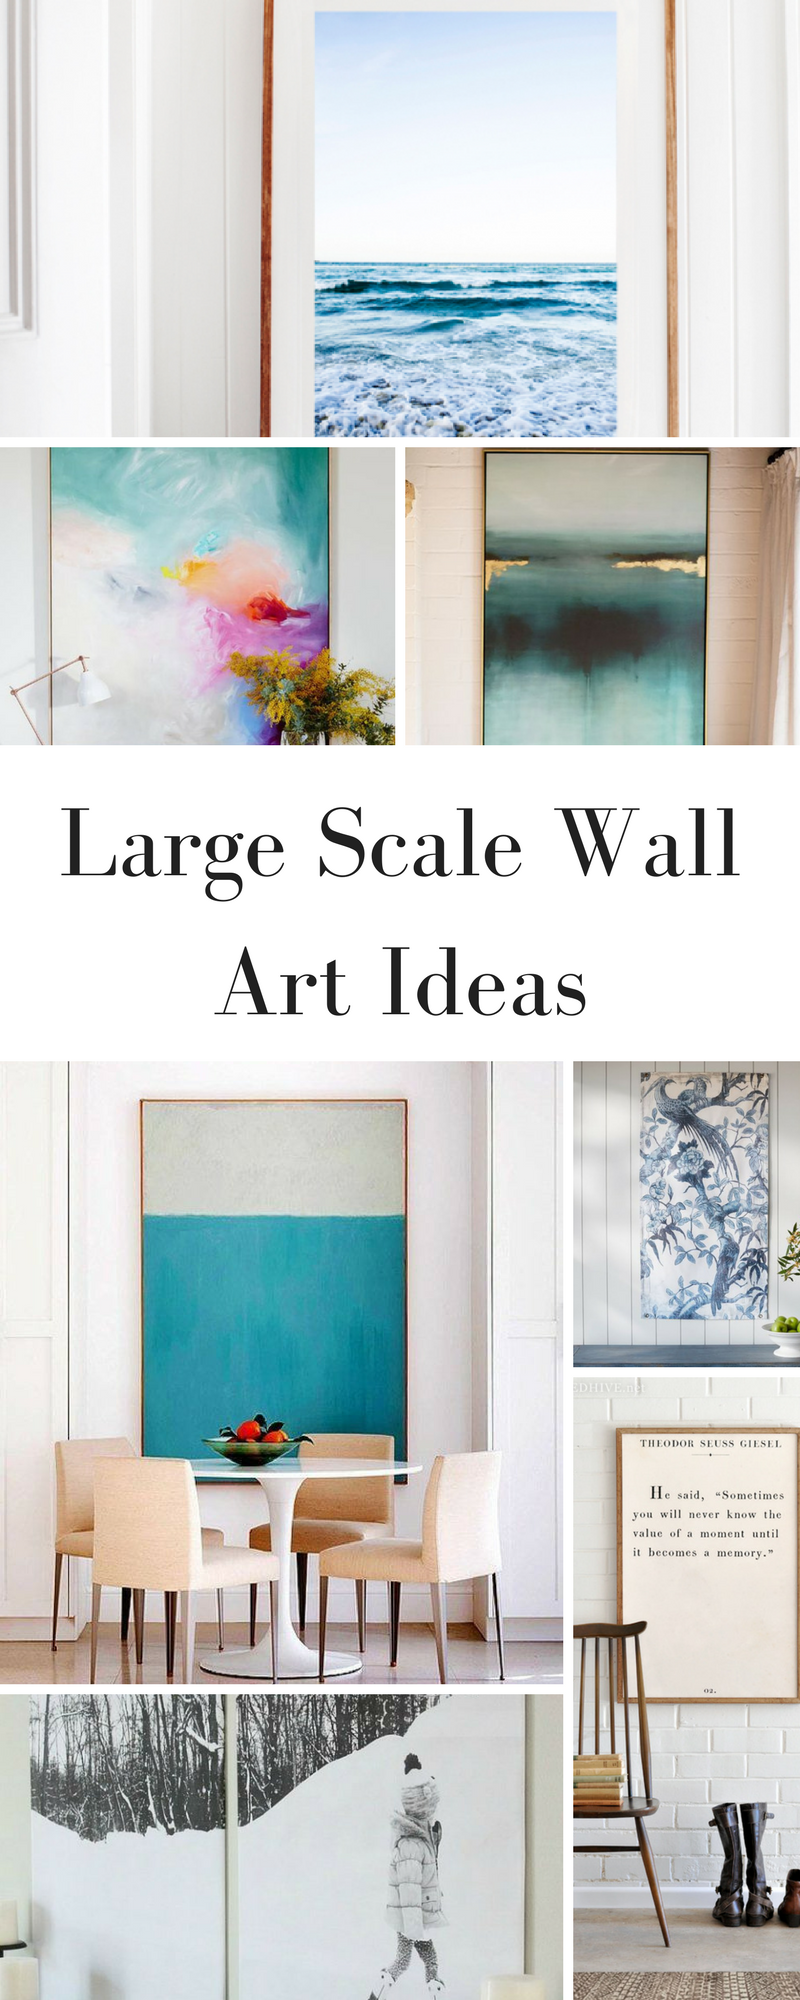 5 Large Wall Art Ideas For Your Empty Walls Large Wall Art Bedroom Diy Large Wall Art Large Scale Wall Art